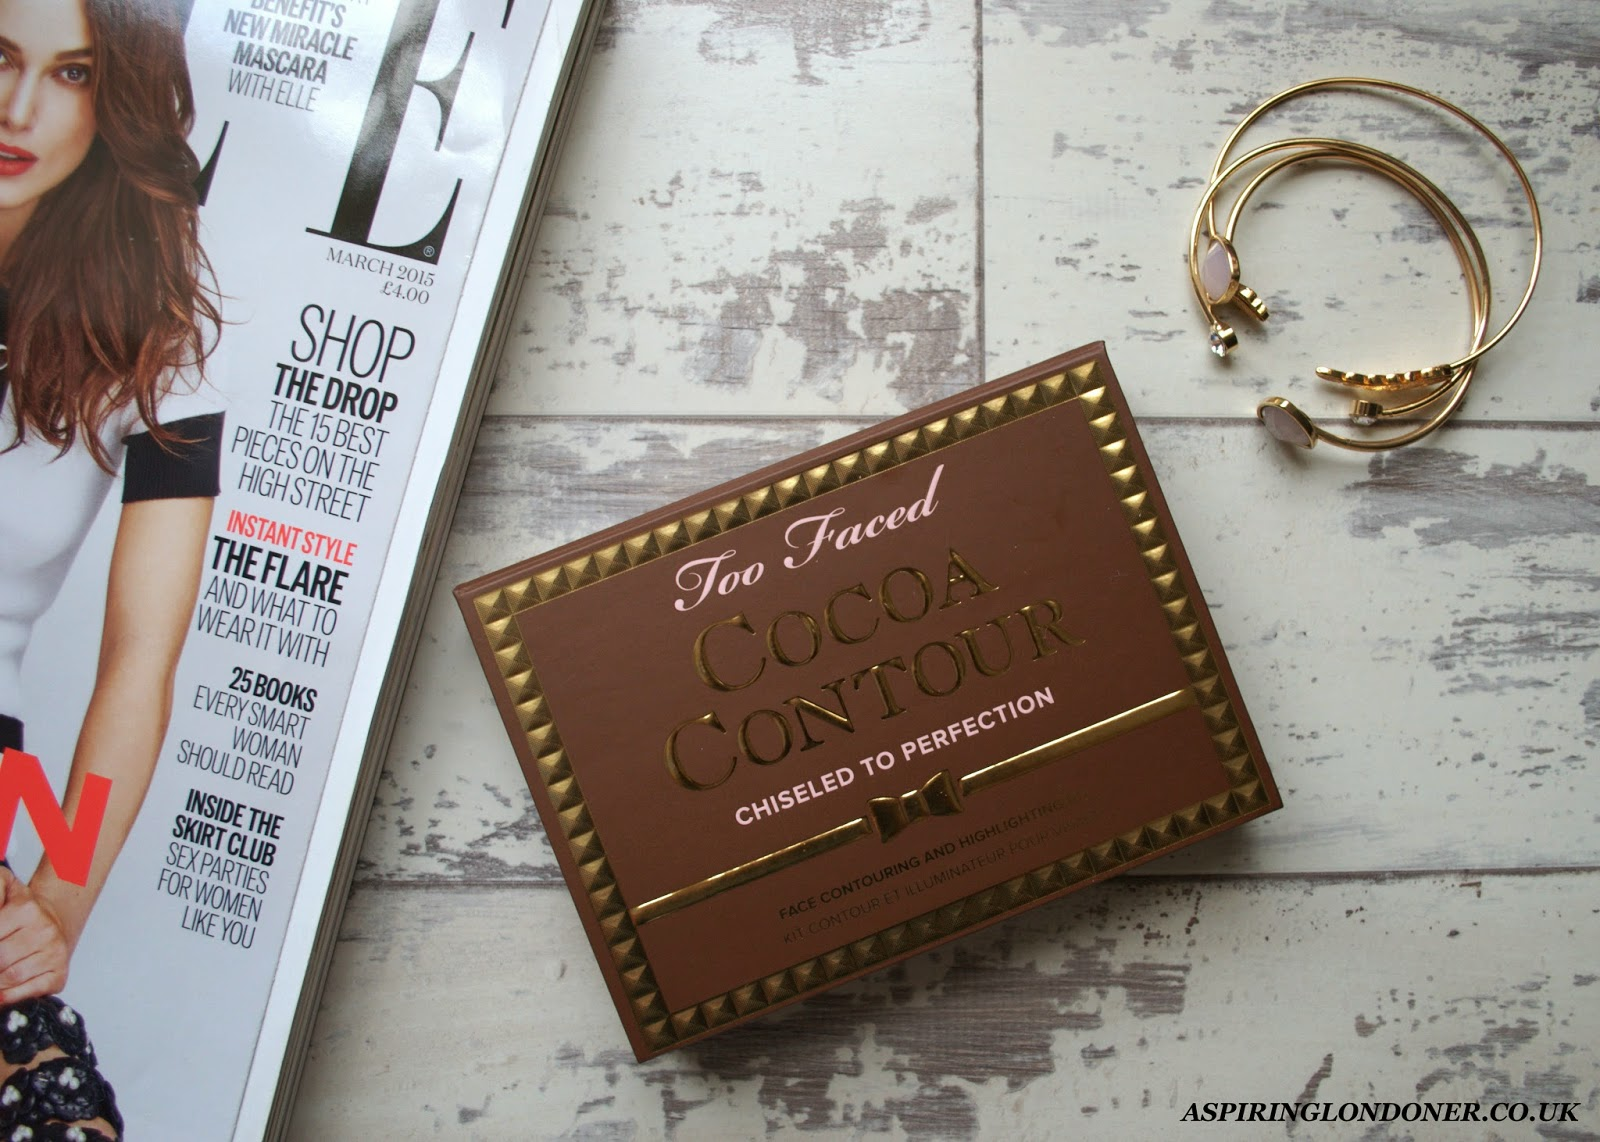 573b873fc98 New Release | Too Faced Cocoa Contour Chiseled To Perfection Palette ...